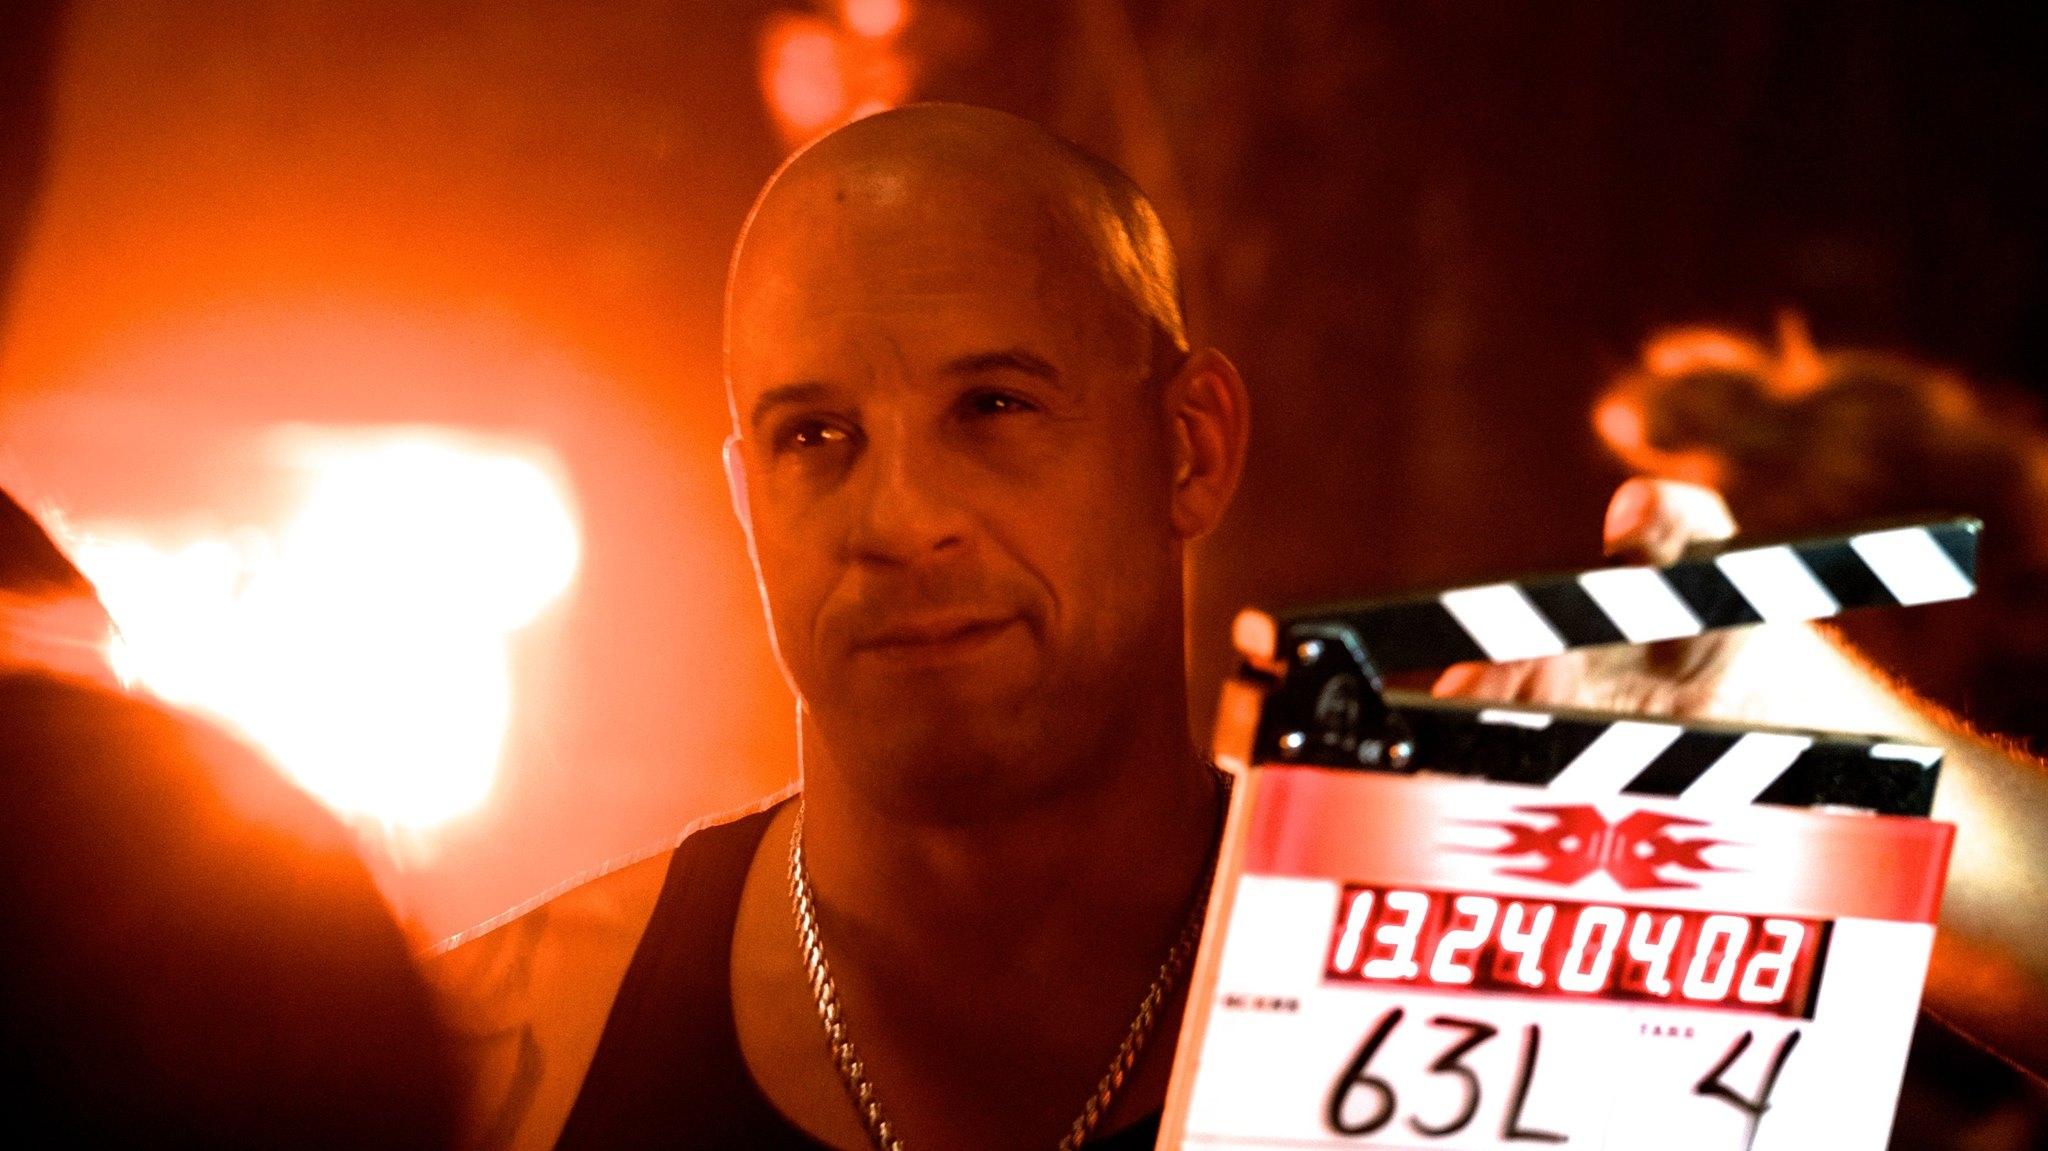 XXx The Return Of Xander Cage Photo